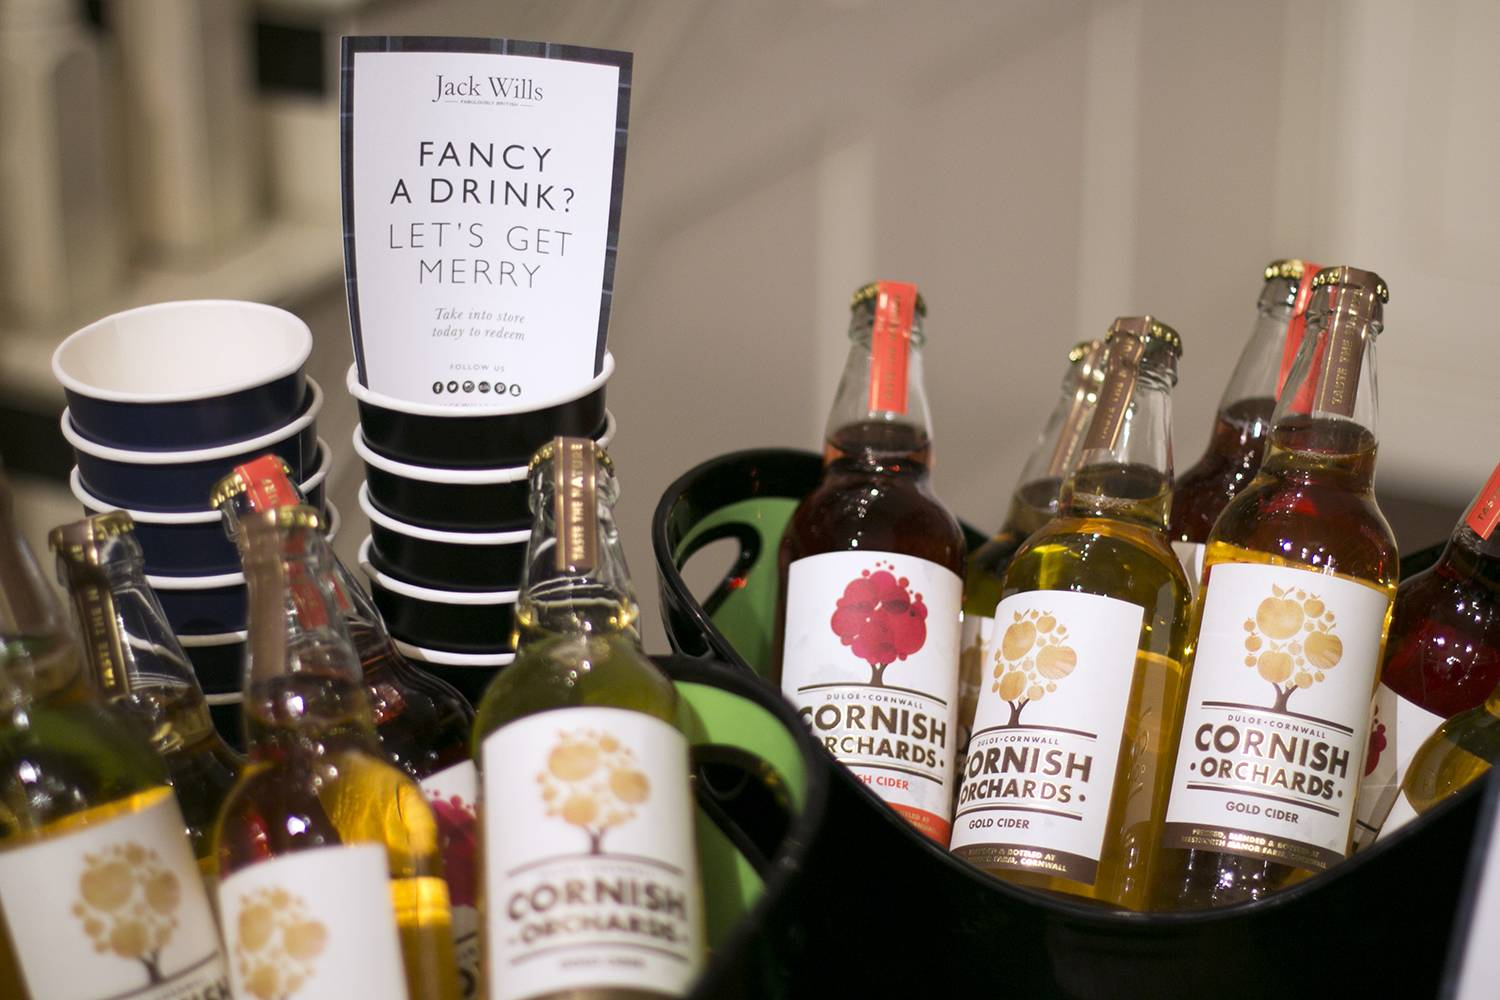 Jack Wills Belfast #cidersessions (Photo courtesy of Jack Wills Social Media Team)